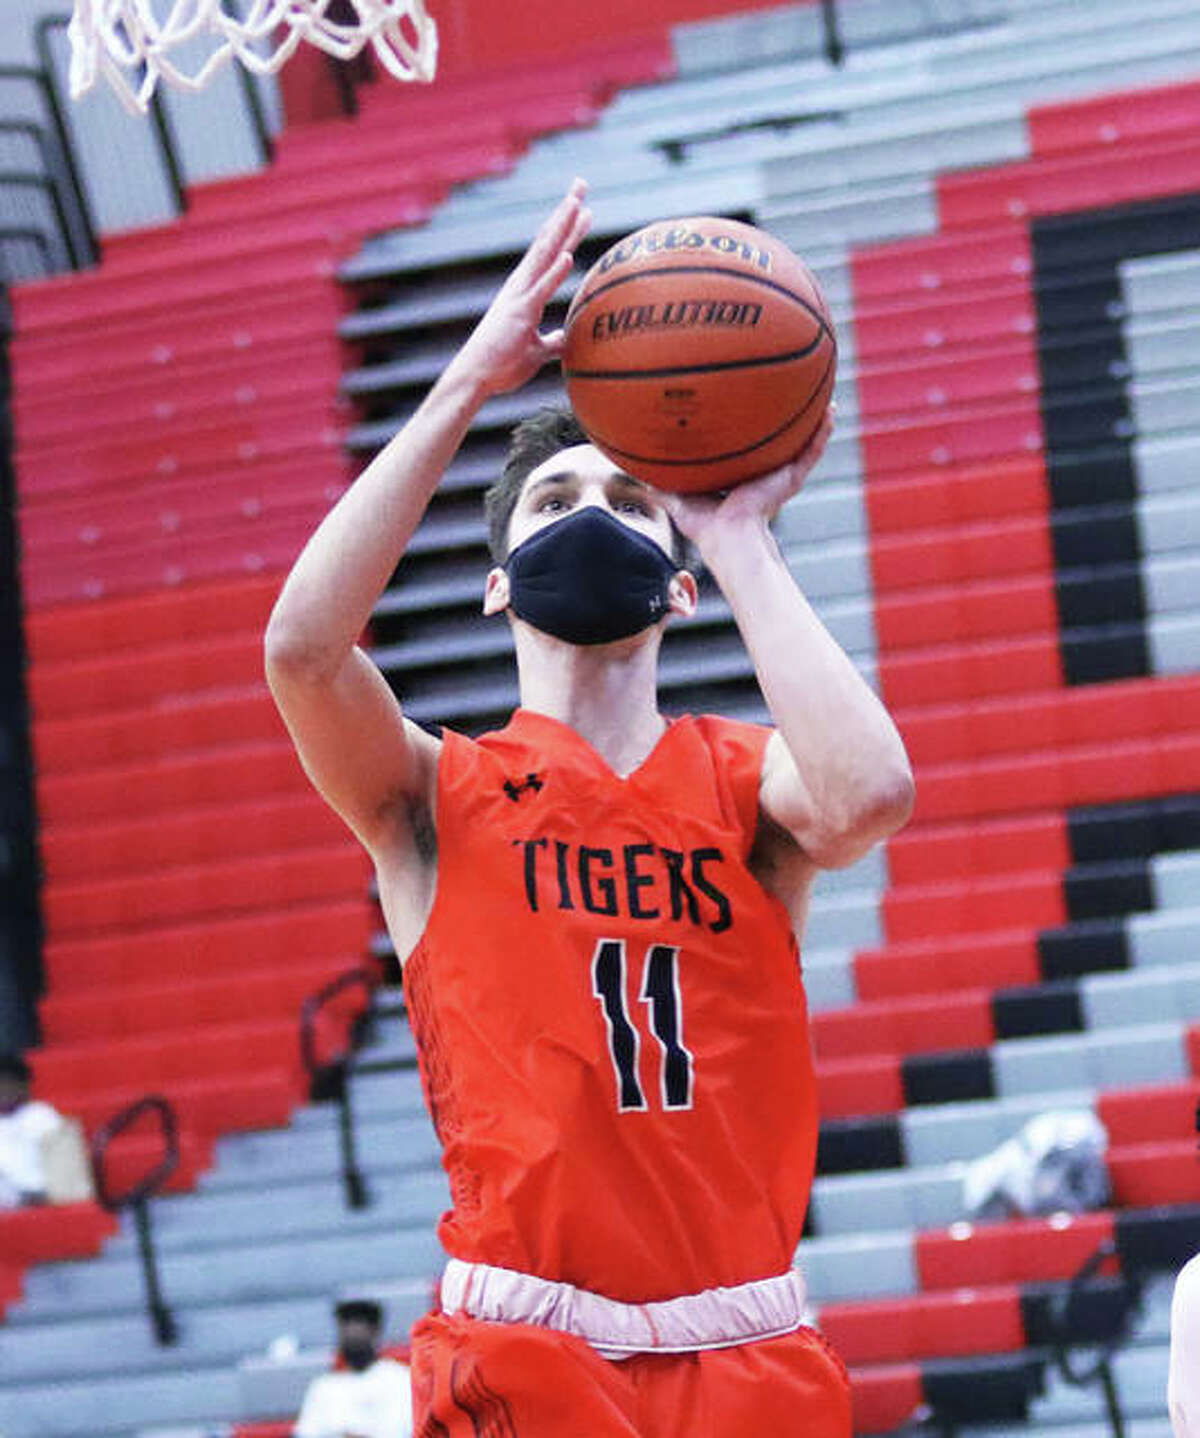 Edwardsville's Brennan Weller scores two of his 30 points in a Feb. 20 win at Alton. Weller led the SWC in scoring at 18.8 points per game and finished his career with 1,216 points.